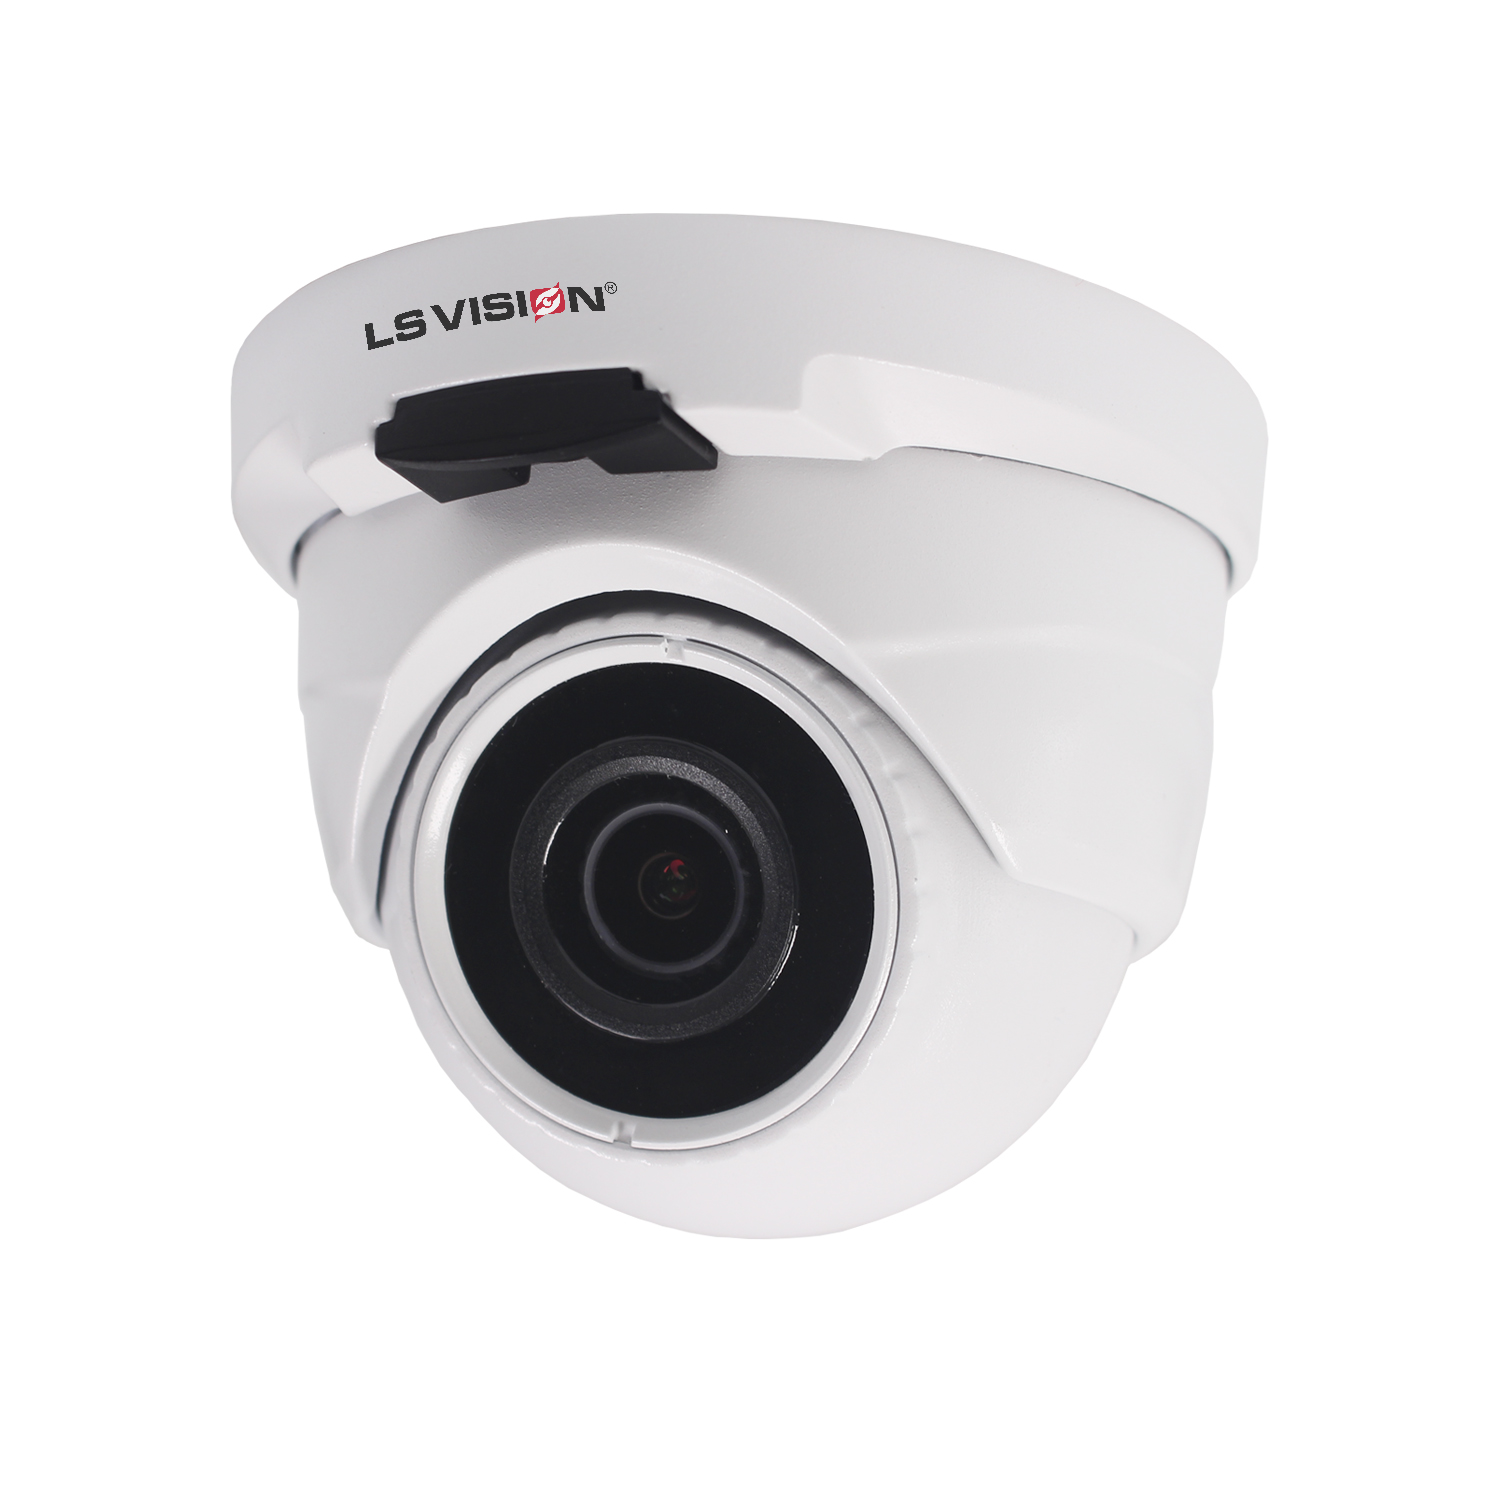 LS VISION H.265 2MP Ultra-low  Illumination Black Light Full Color Starlight POE Audio Dome IP Camera